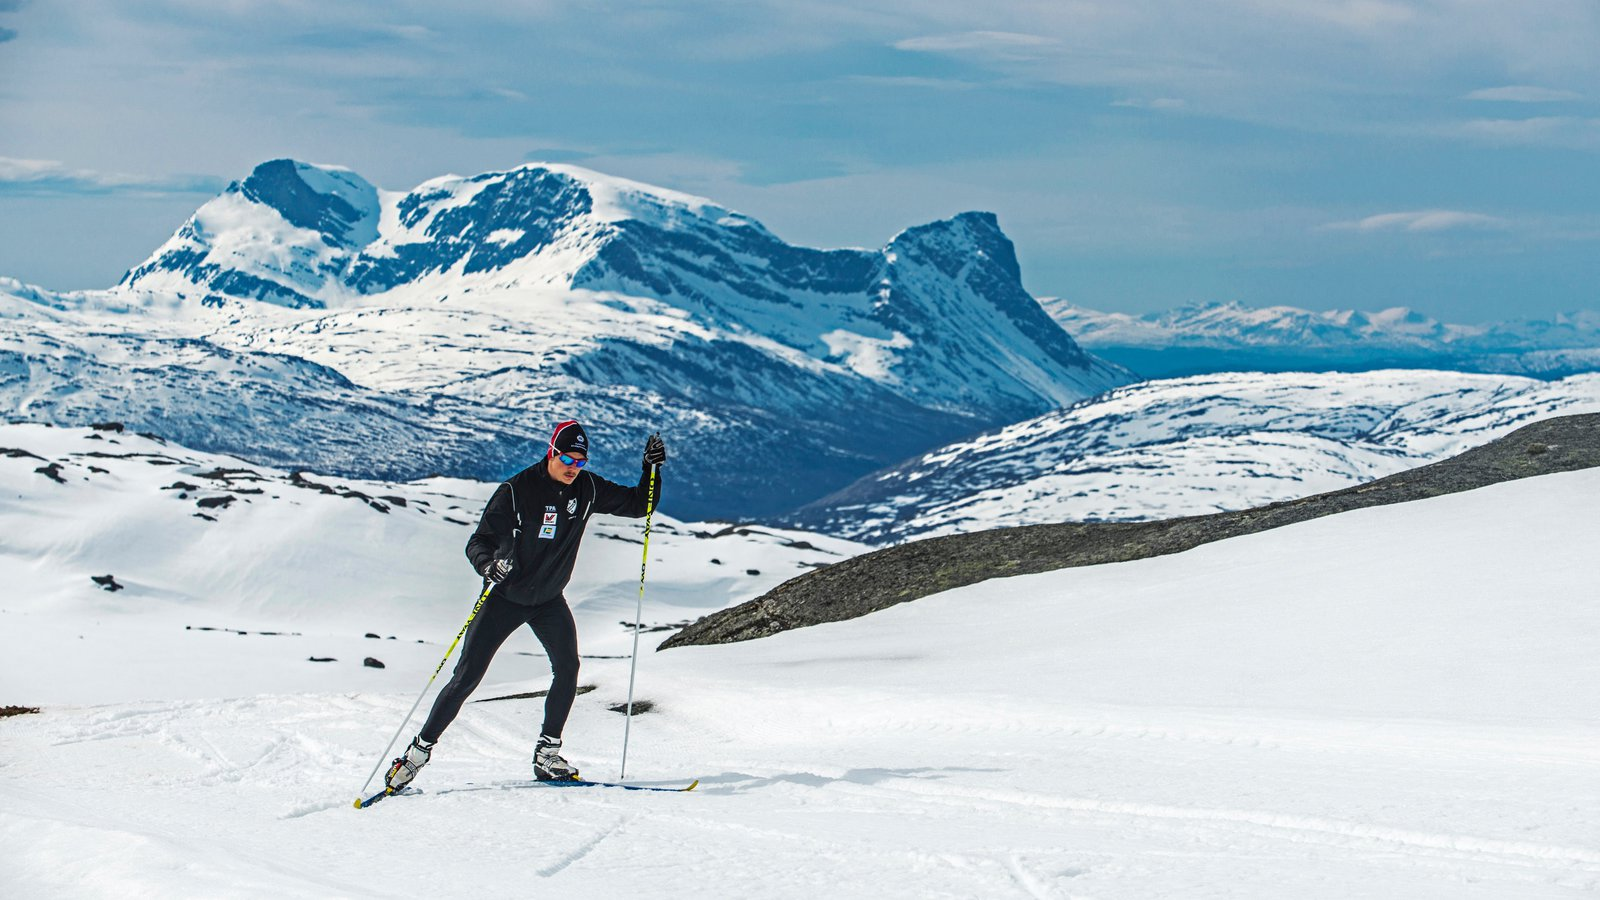 Riksgransen which includes cross-country skiing and snow